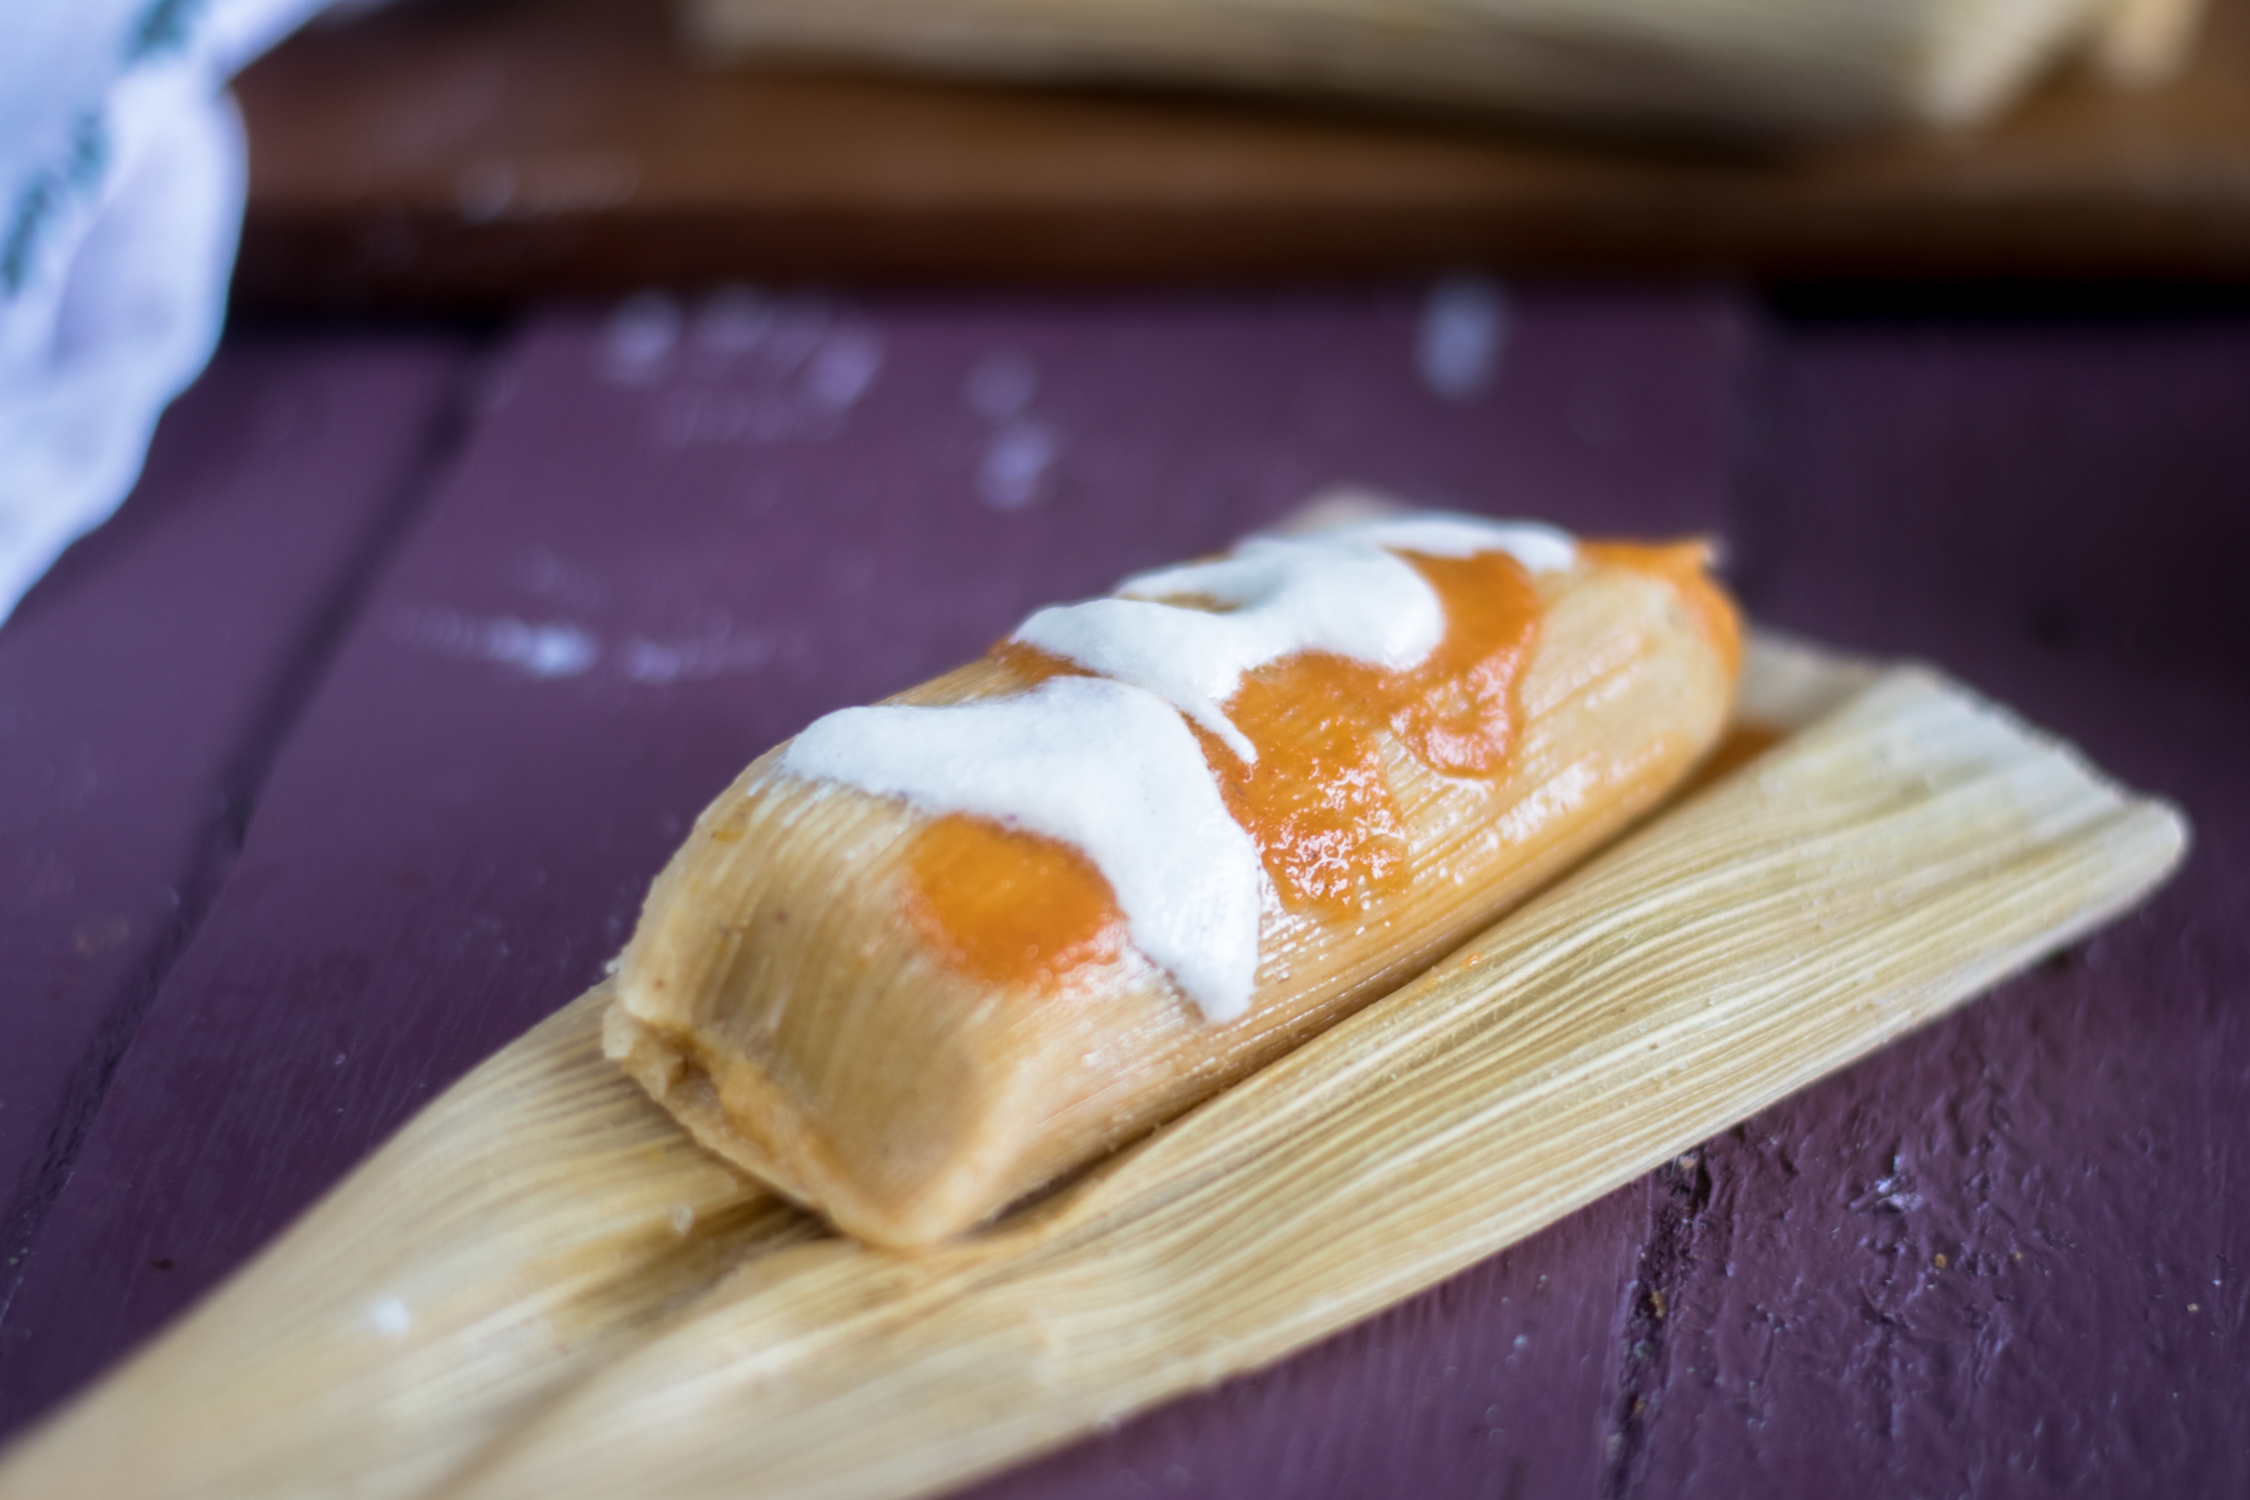 Fall inspired Mexican tamales filled with butternut squash and black beans. I like serving these tamales with a red chile sauce and cashew crema.